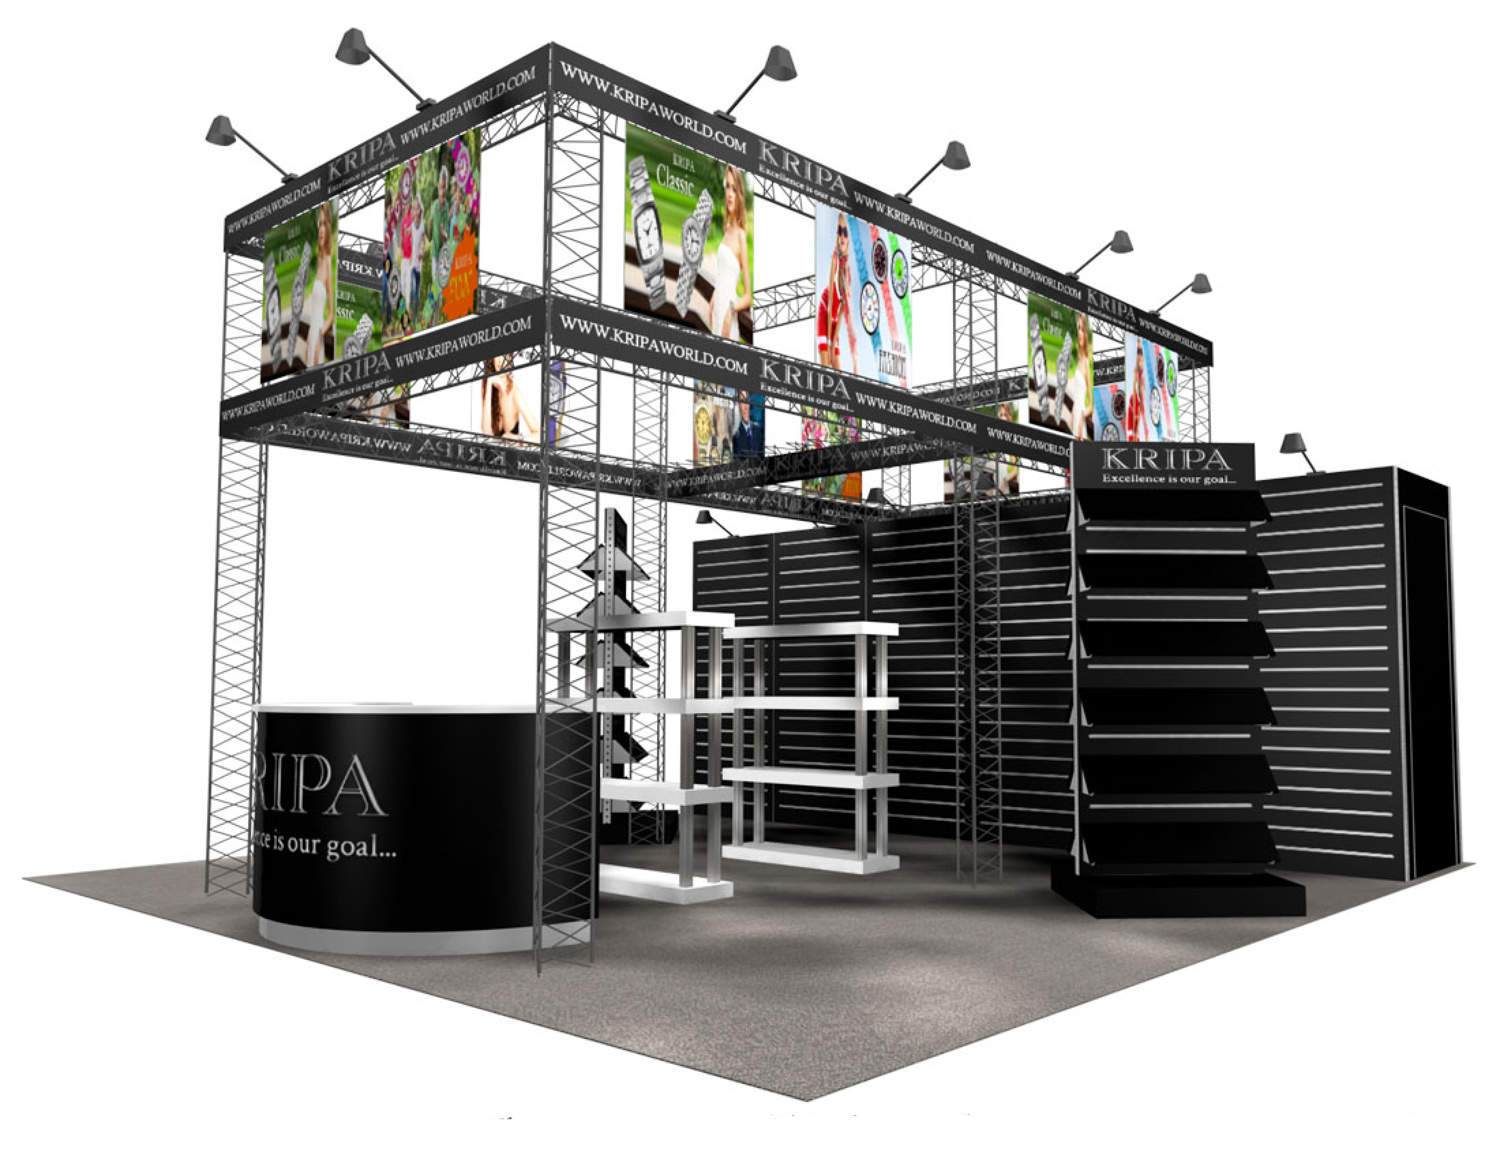 kripa world 2020 trade show booth - Booth Design Ideas